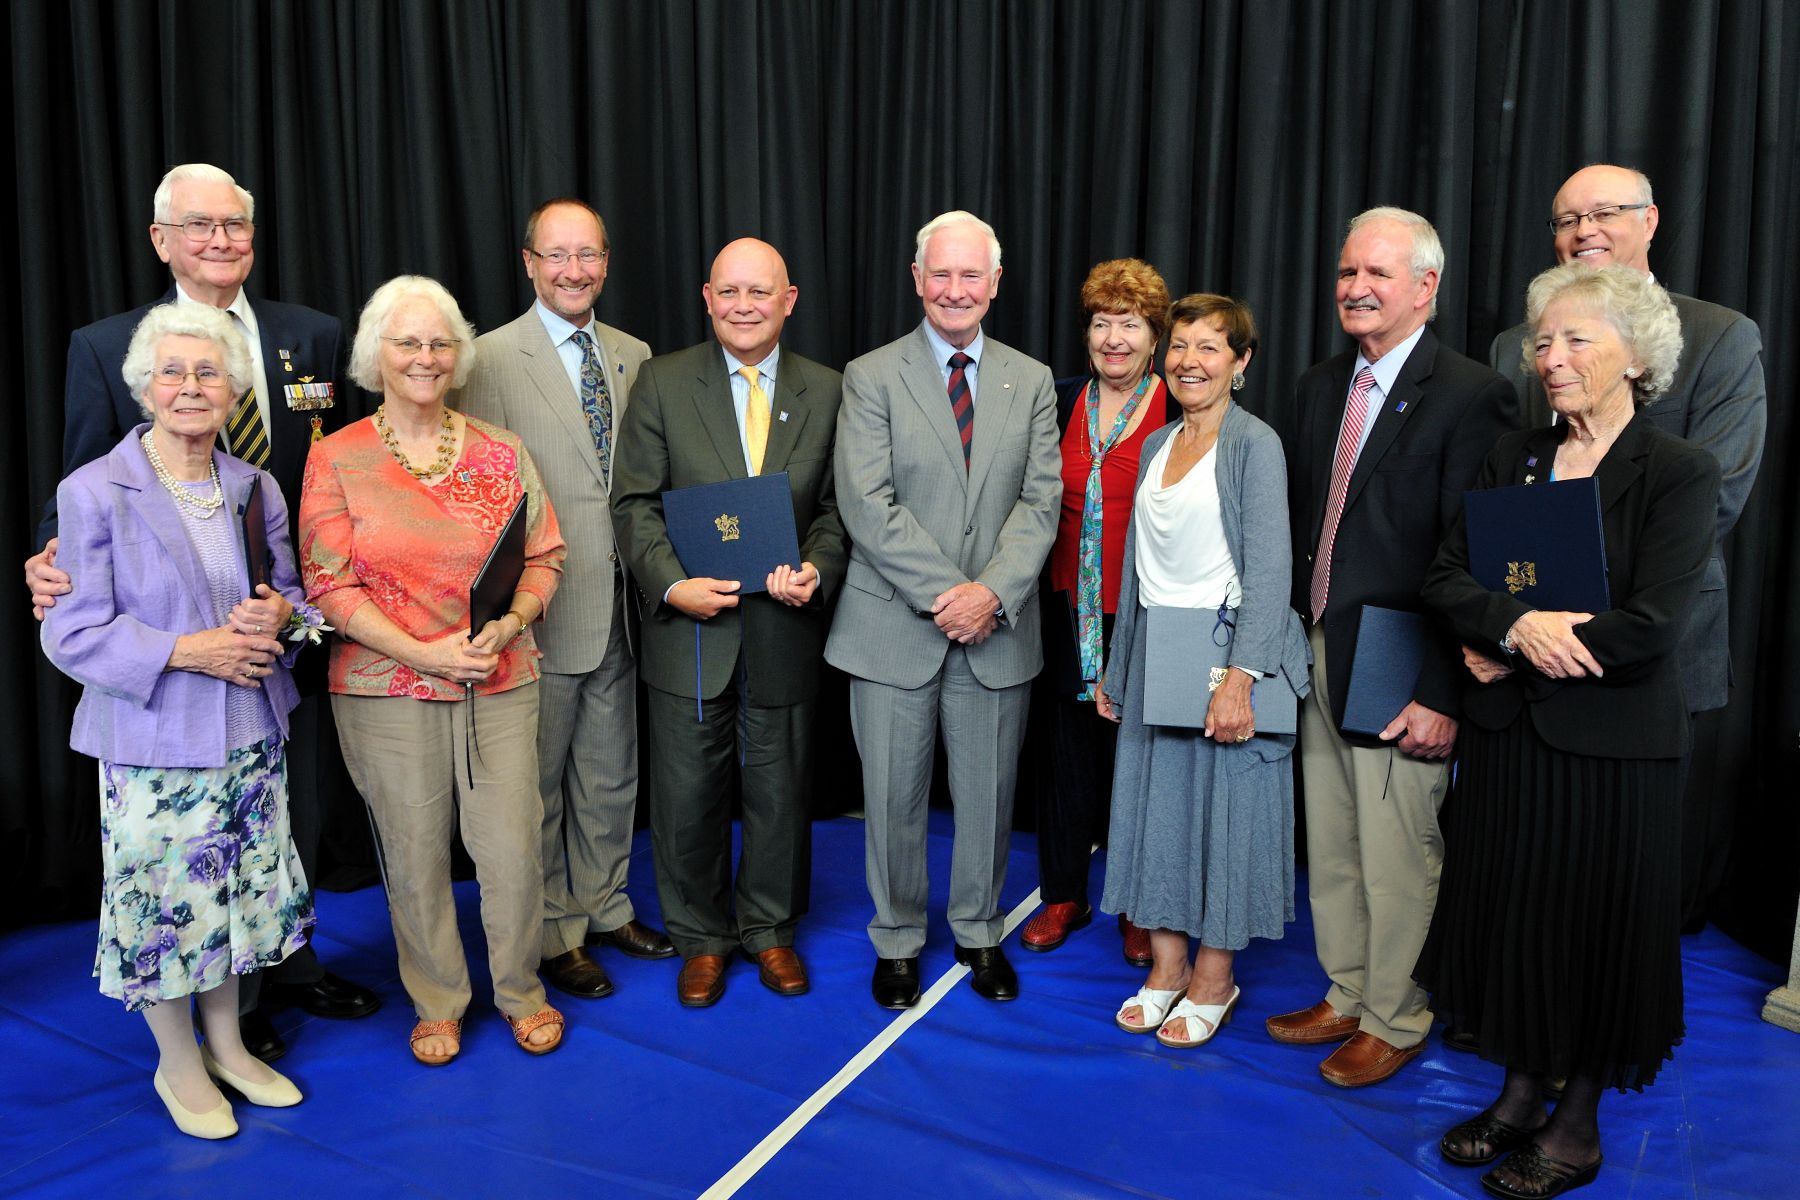 His Excellency is pictured with the 10 Caring Canadian Award recipients, all from British Columbia.